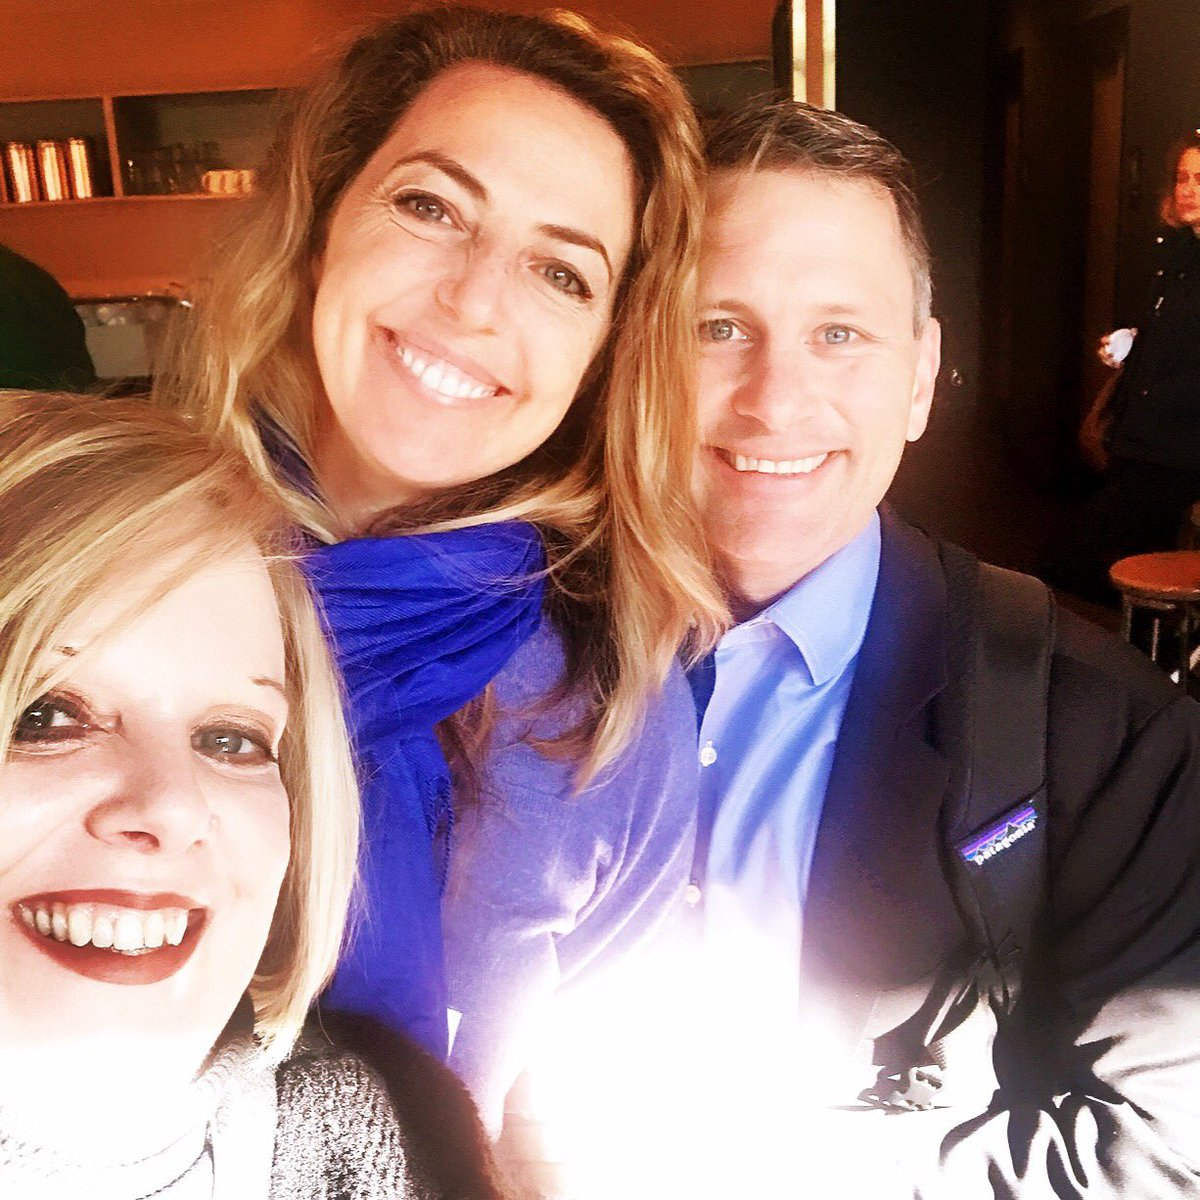 Loved seeing you today @JodiWomack @JasonWomack #friends #HappyThanksgiving #pr #prlife<br>http://pic.twitter.com/1ky1g8CqX0